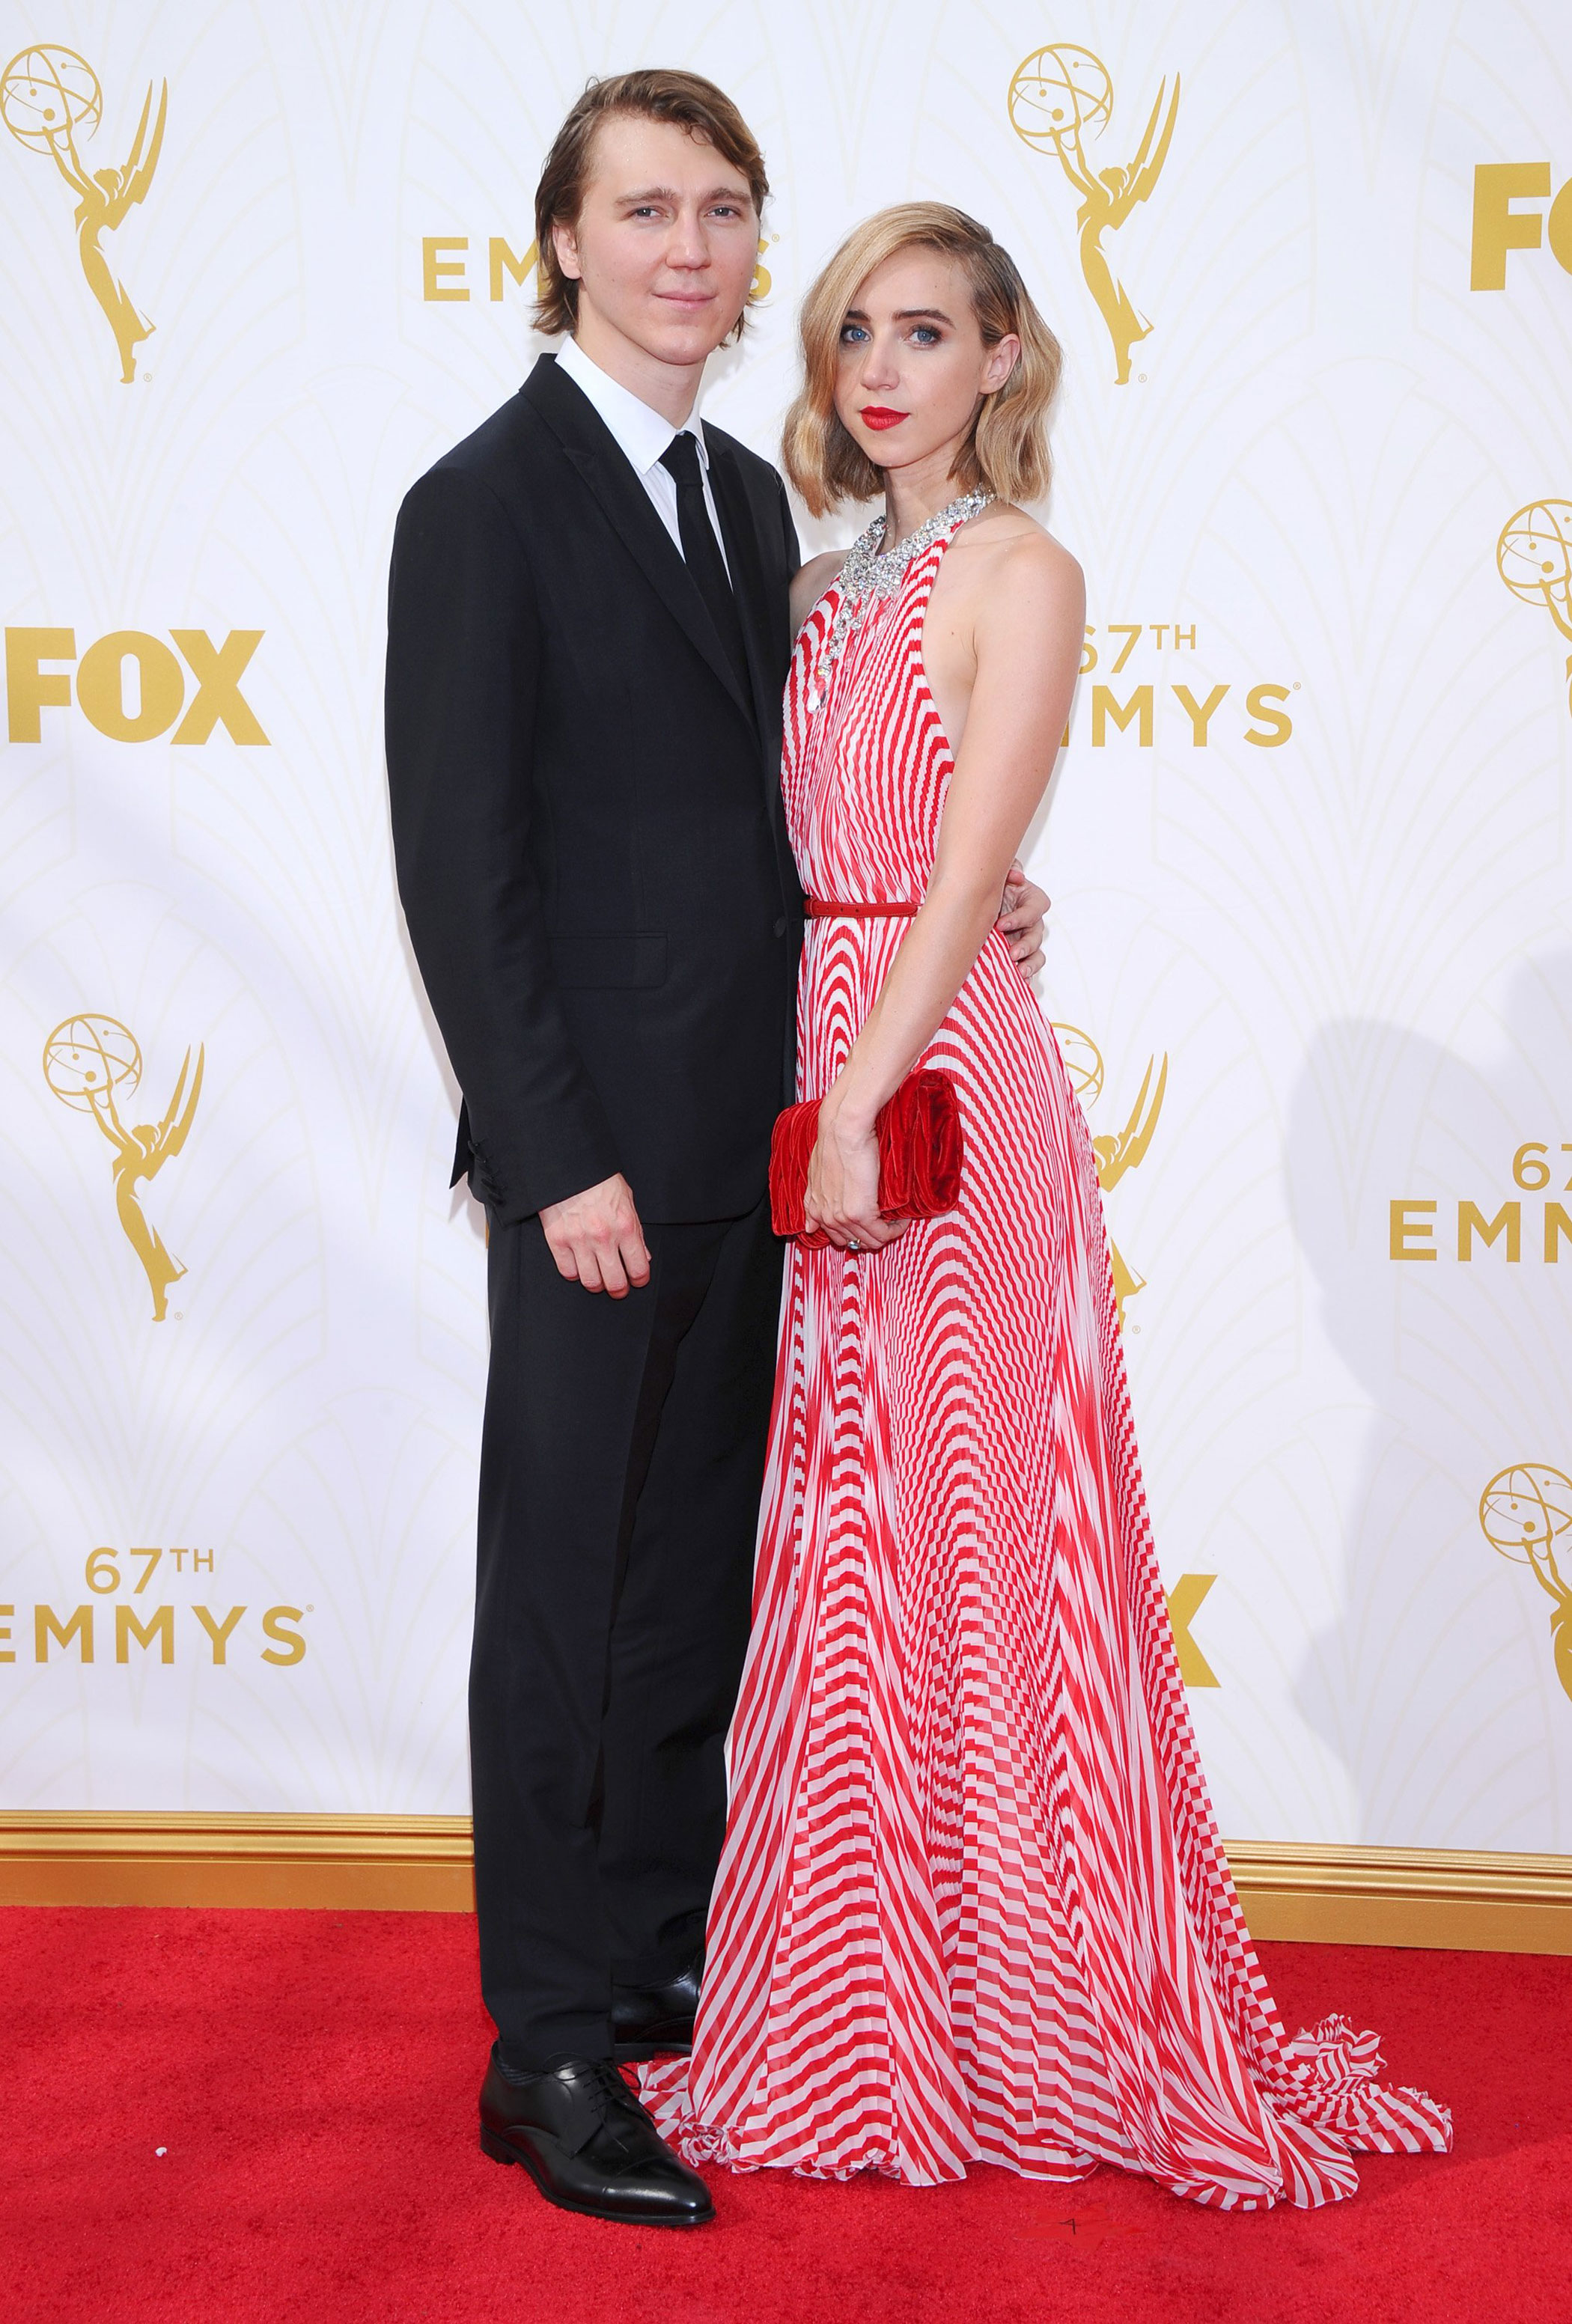 Paul Dano and Zoe Kazan at the 67th Emmy Award on Sept. 20, 2015 in Los Angeles.